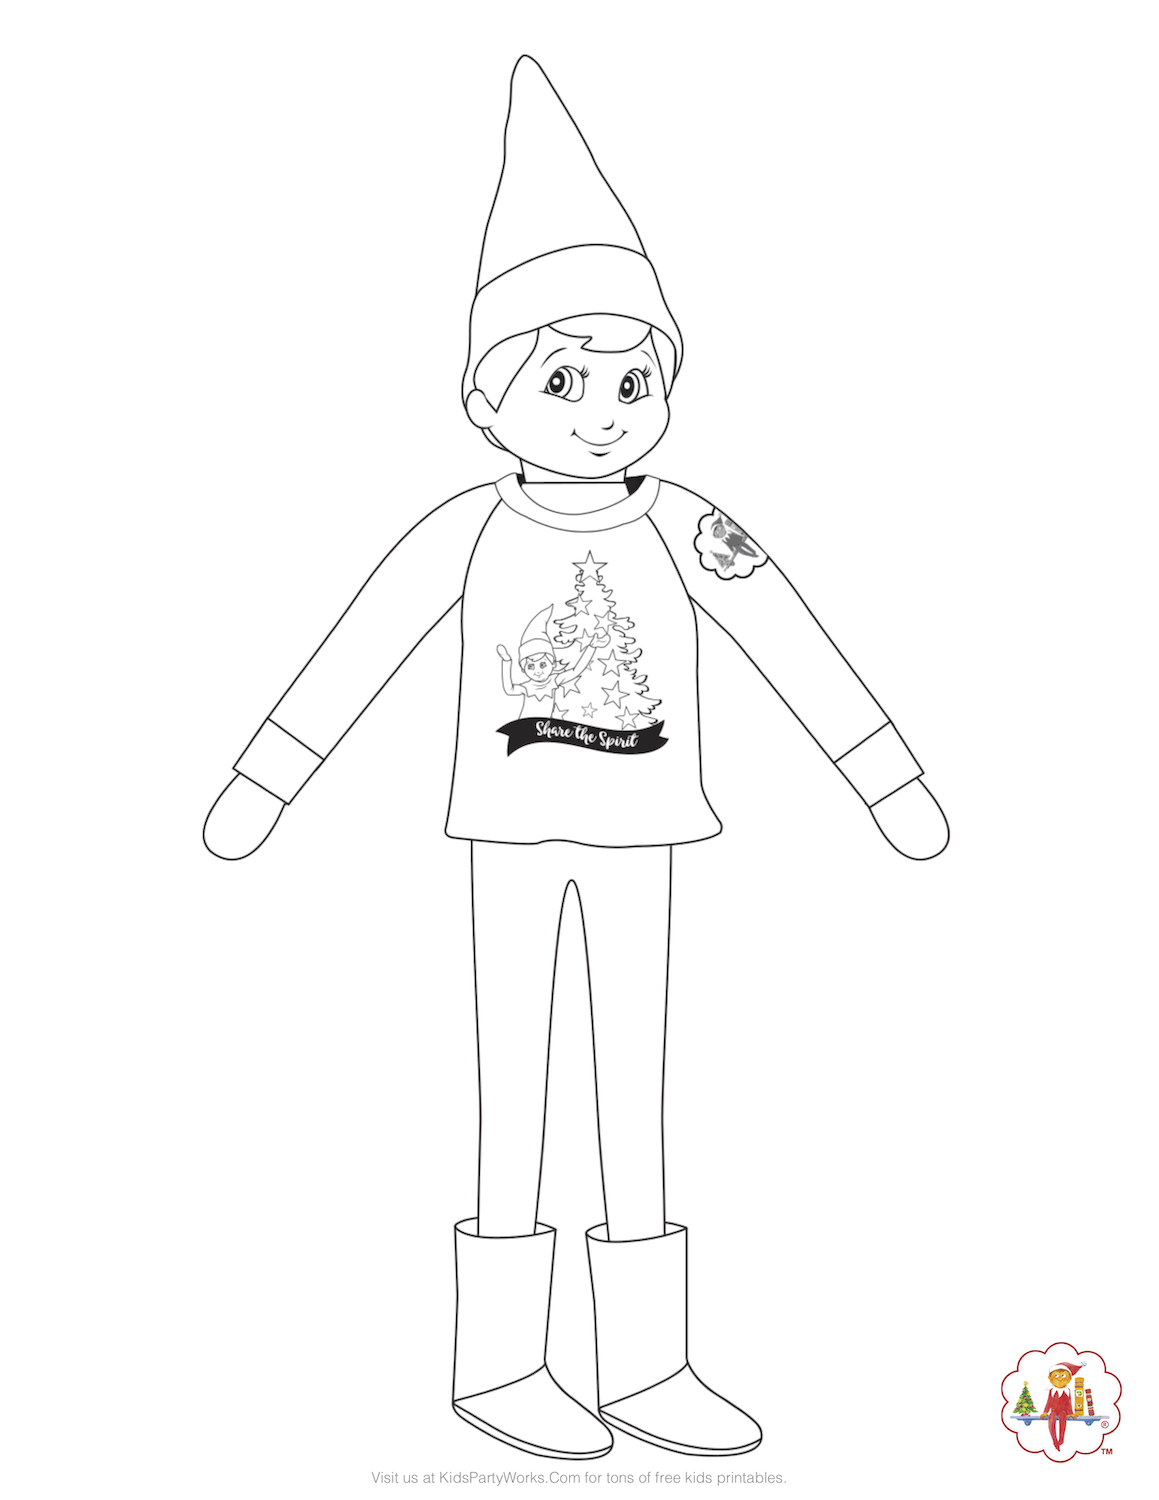 Elf On The Shelf Coloring Page He S Comfy And Cozy In His Holiday Sweats Christmas Coloring Pages Awesome Elf On The Shelf Ideas Free Christmas Coloring Pages